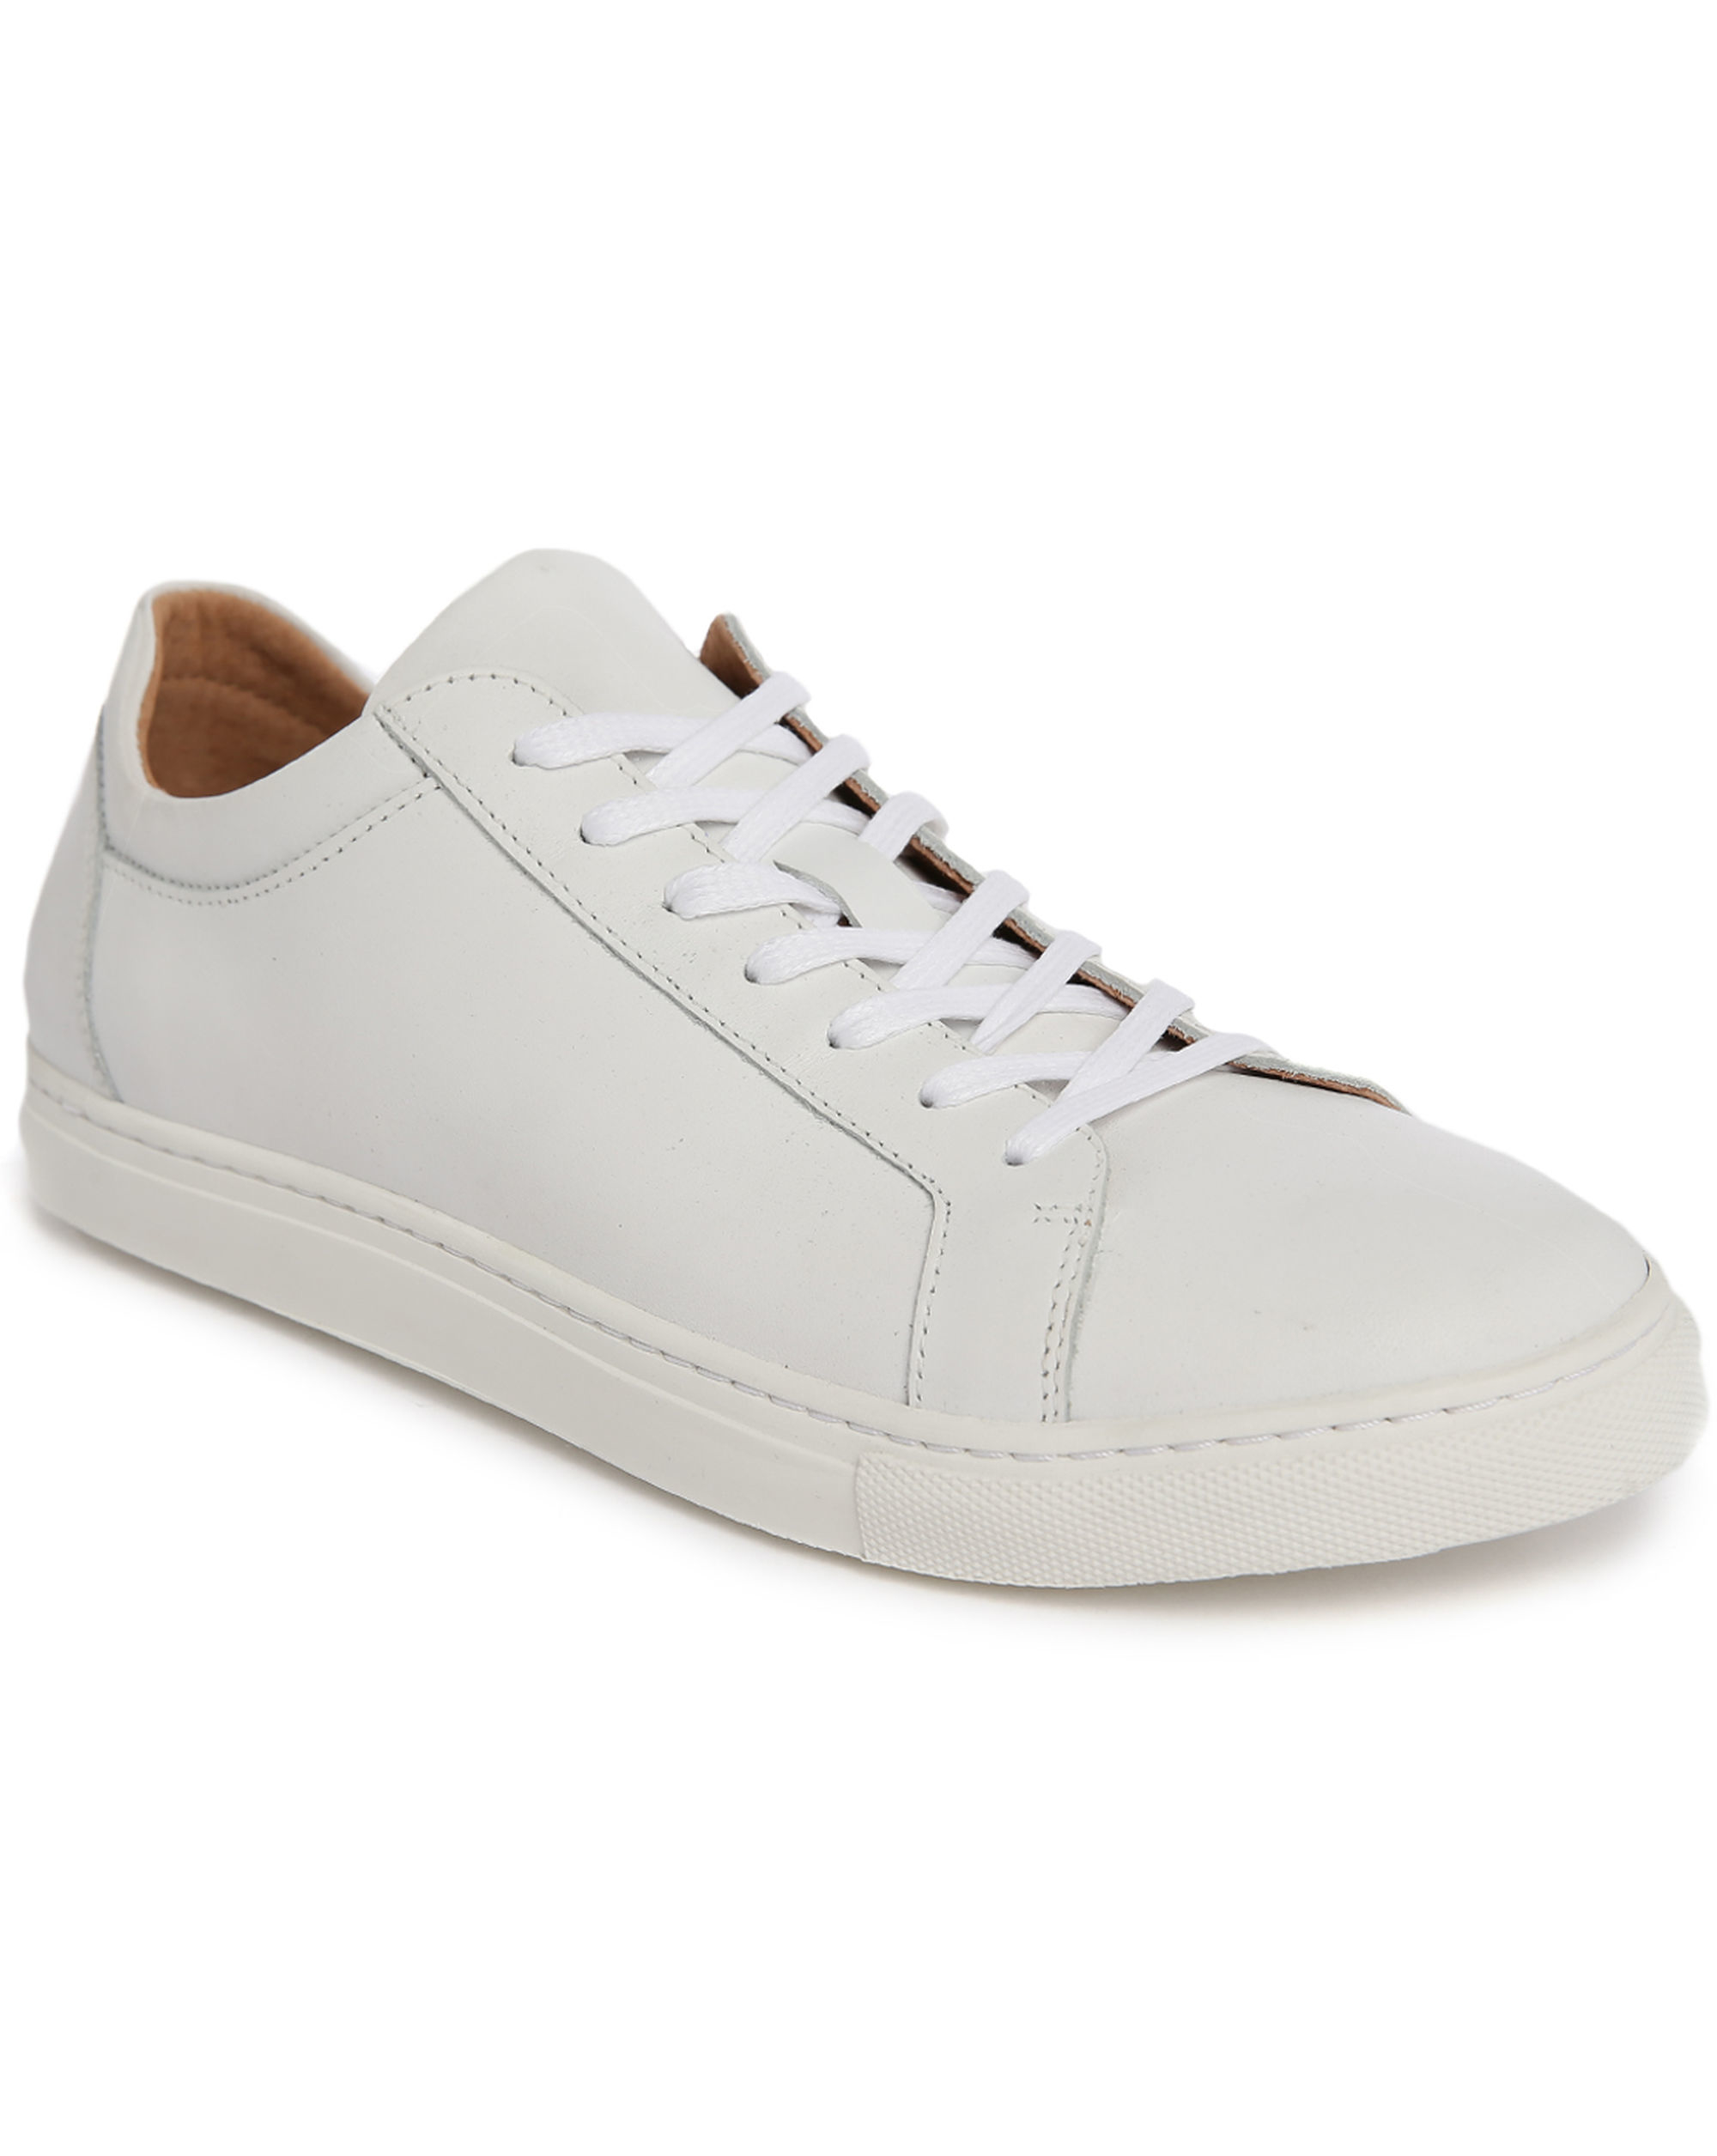 selected white duran leather low top sneakers with beige